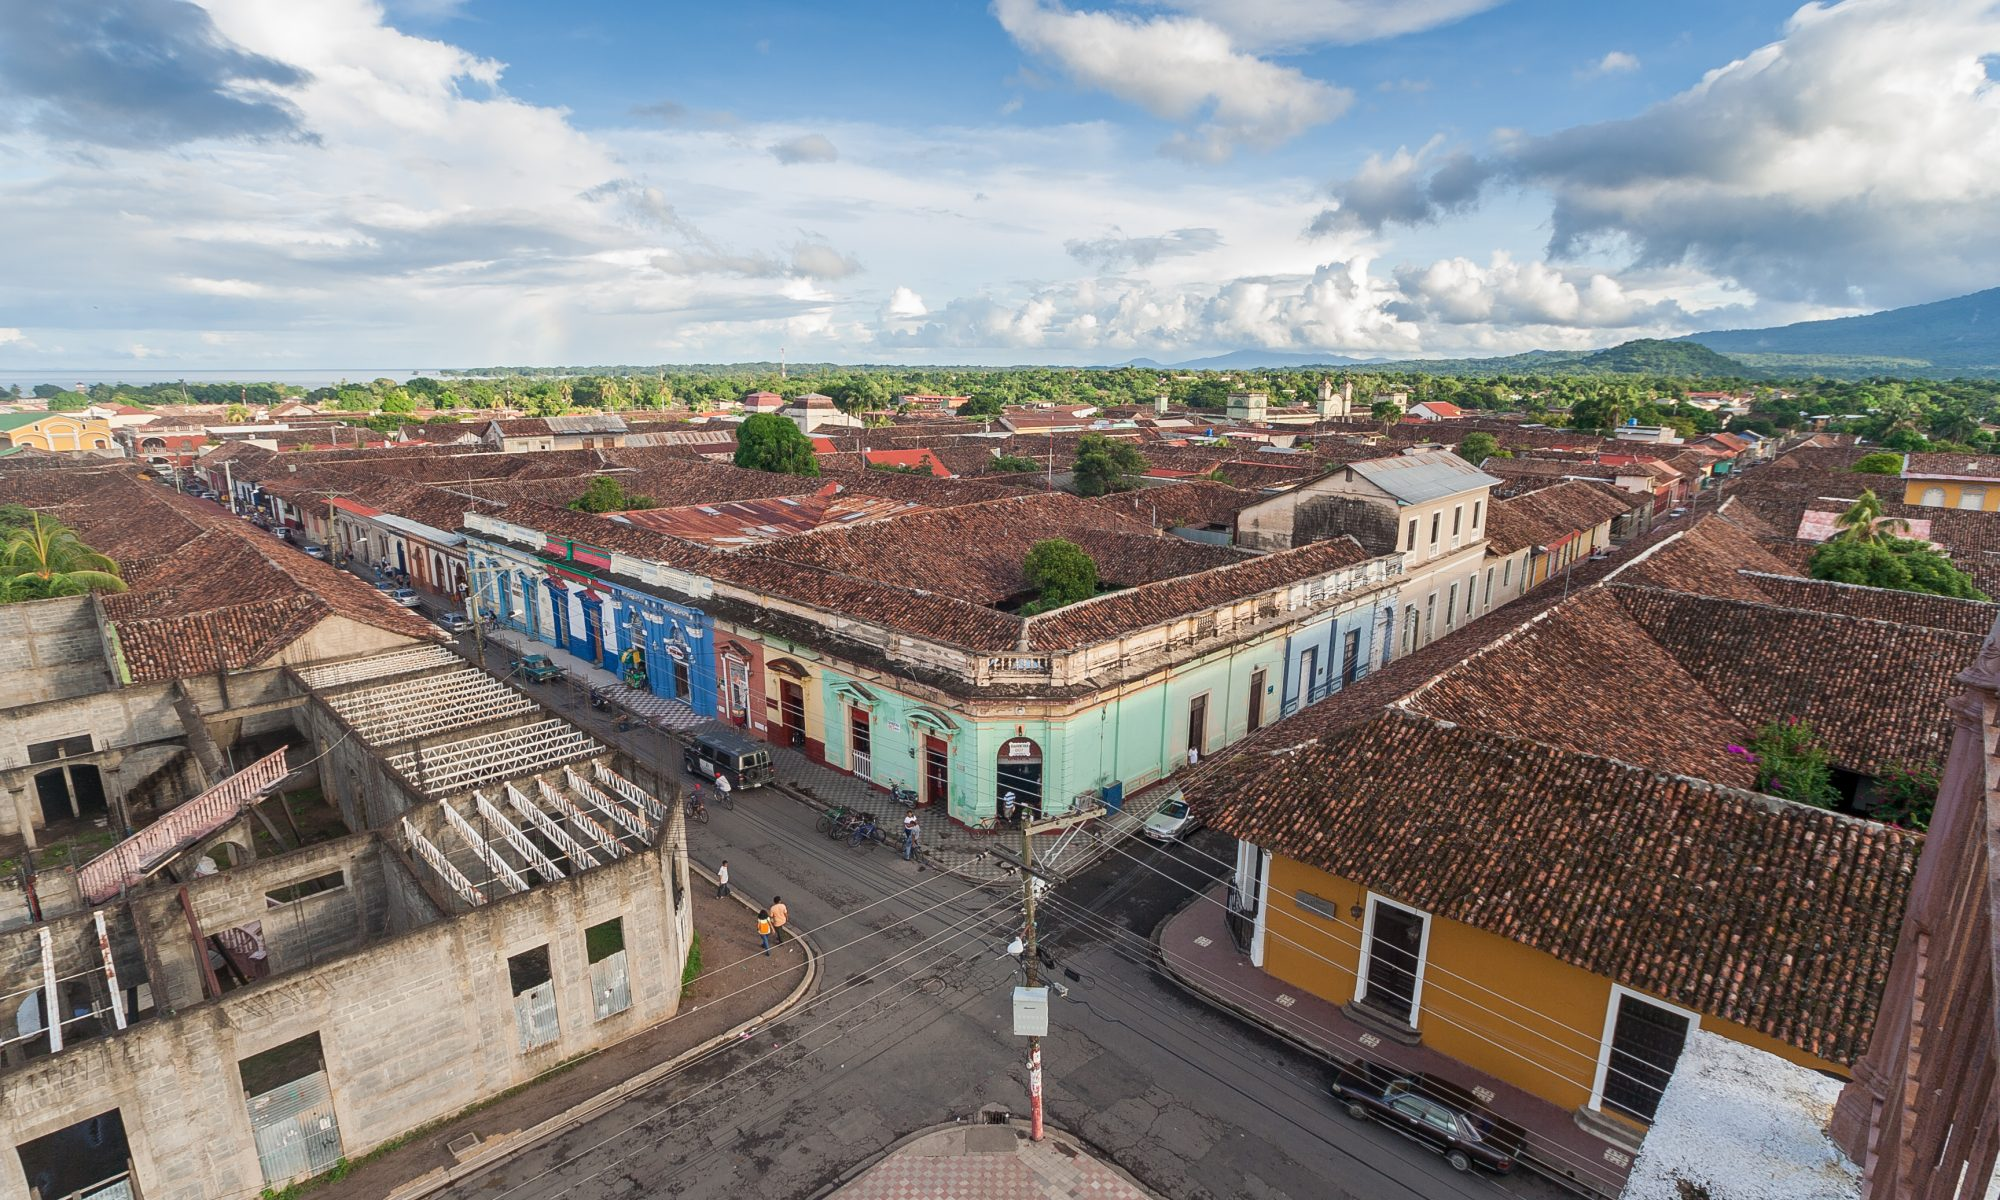 aerial view of crossroads in Nicaragua